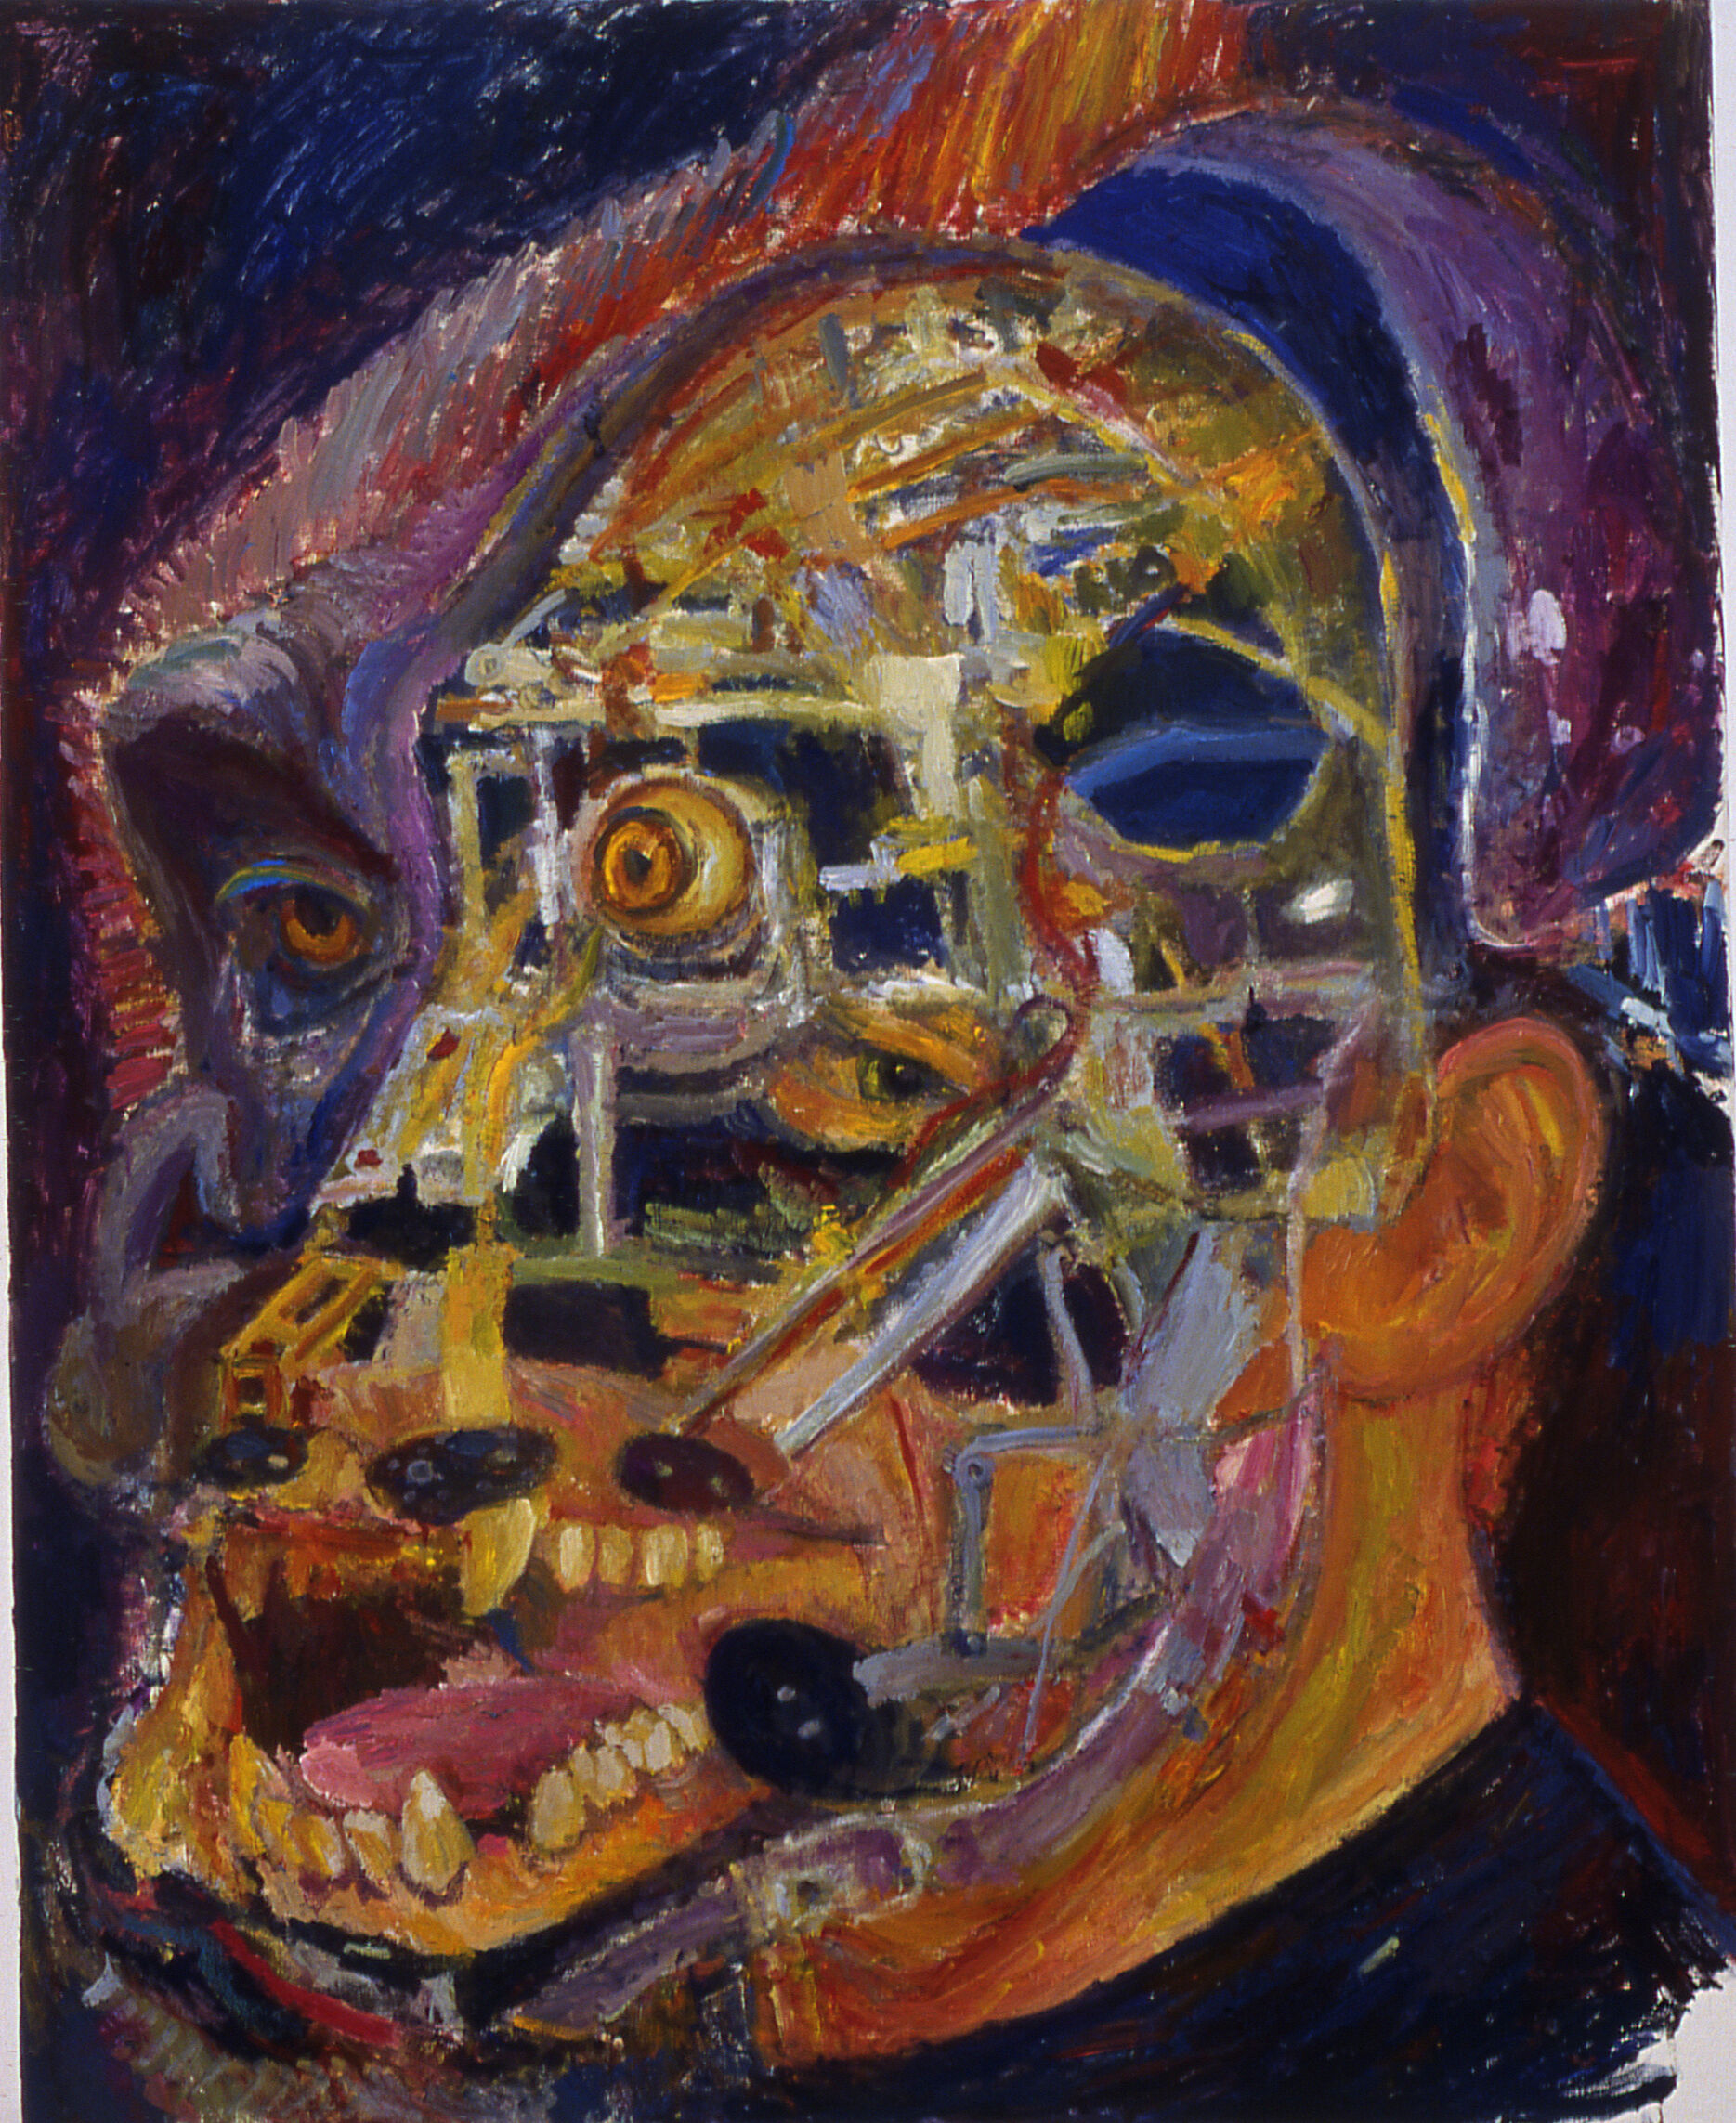 A painting of a portrait of a man with a scary face.